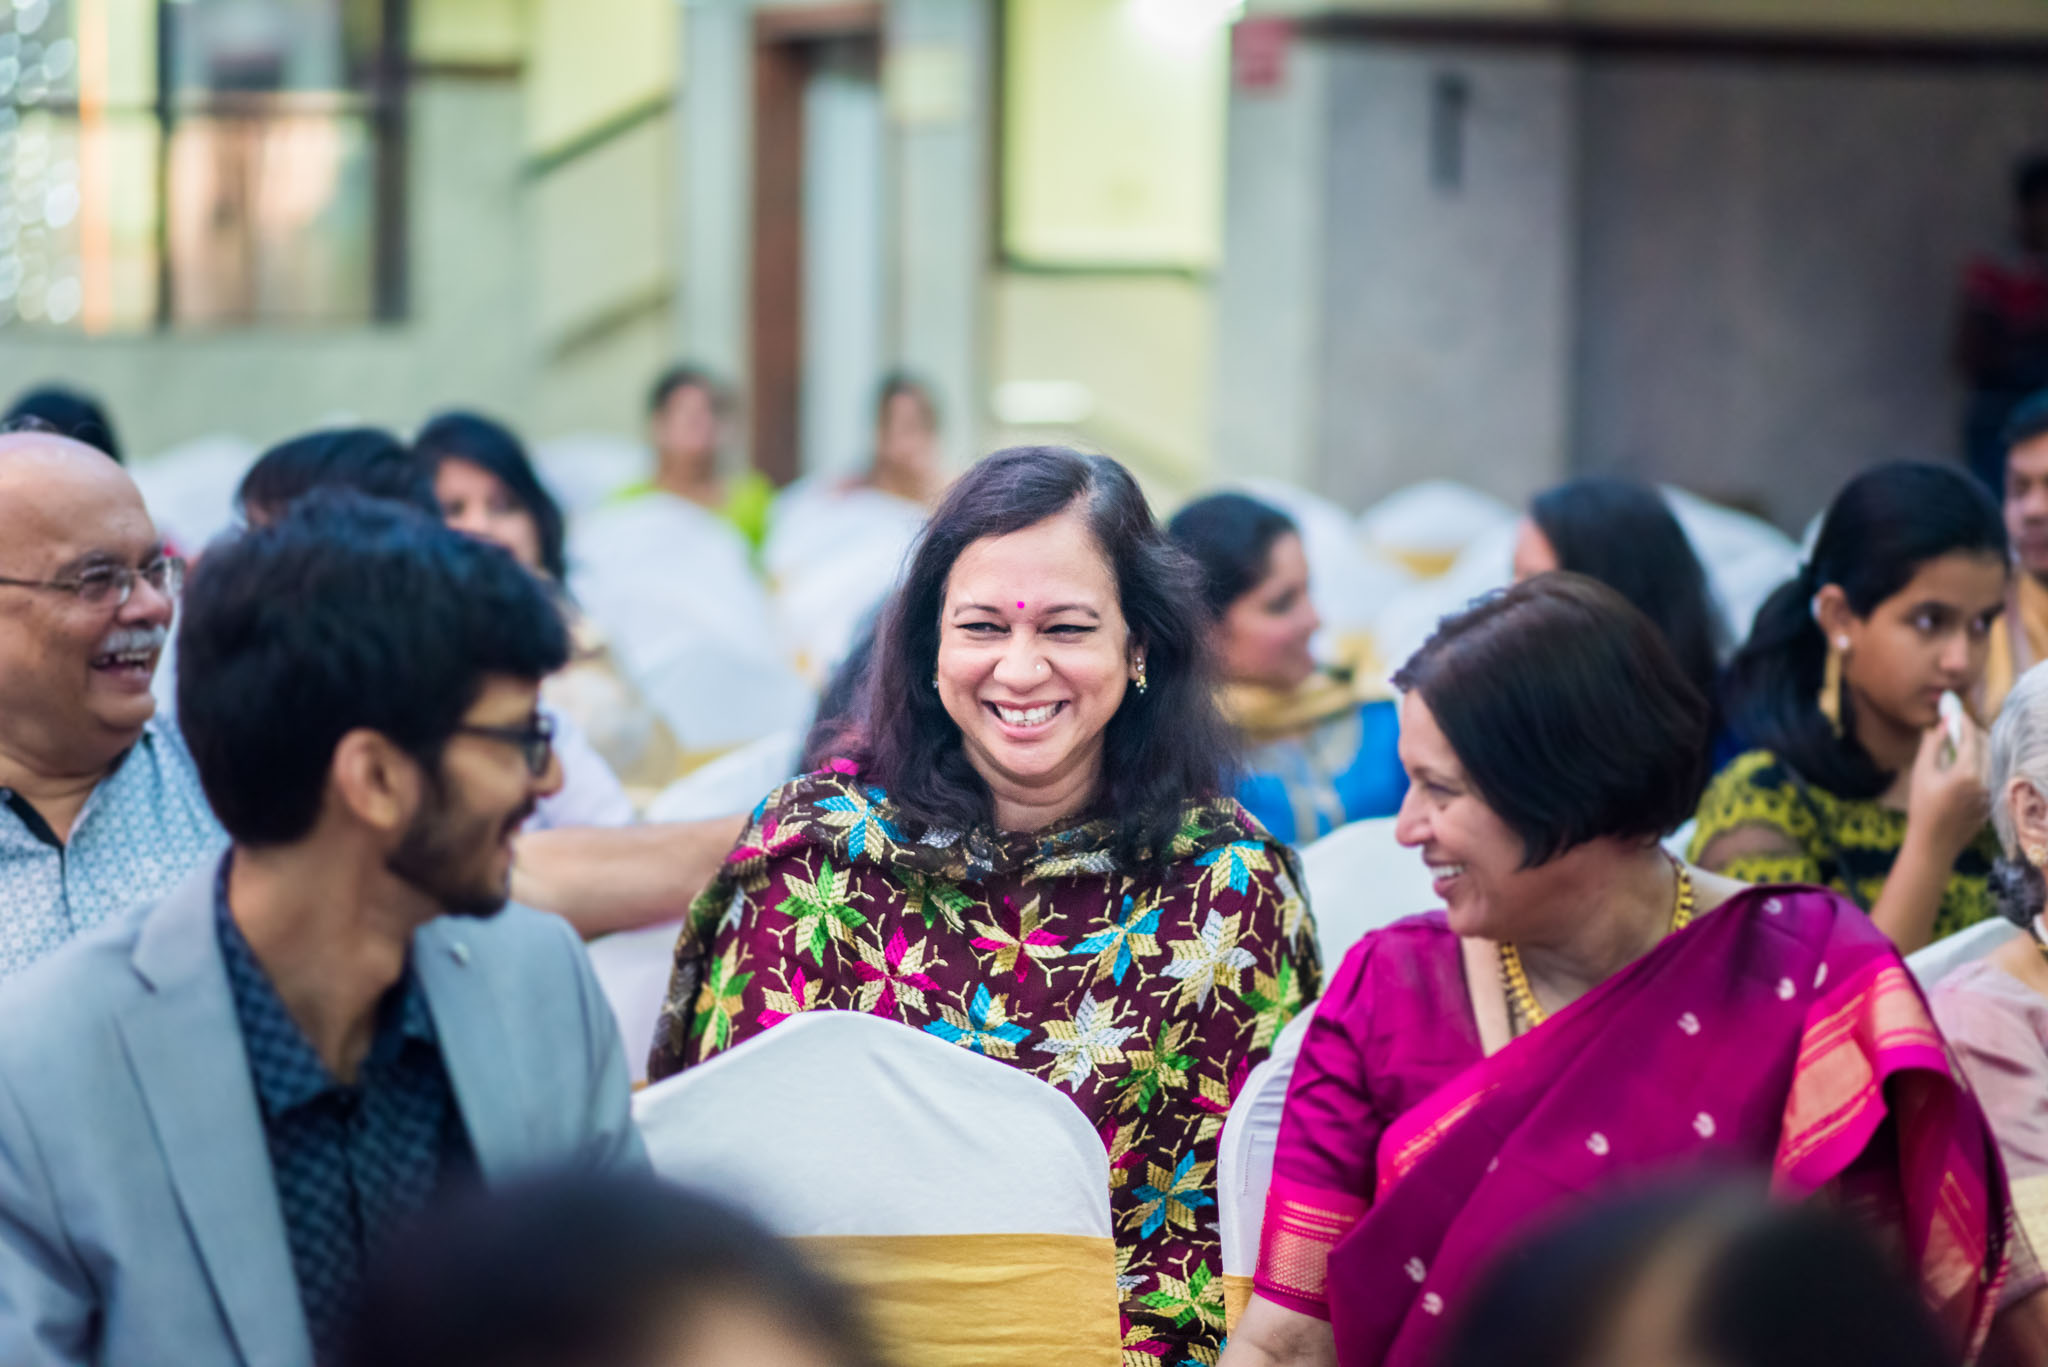 WhatKnot-Candid-Wedding-Photography-Mumbai-Bangalore-228